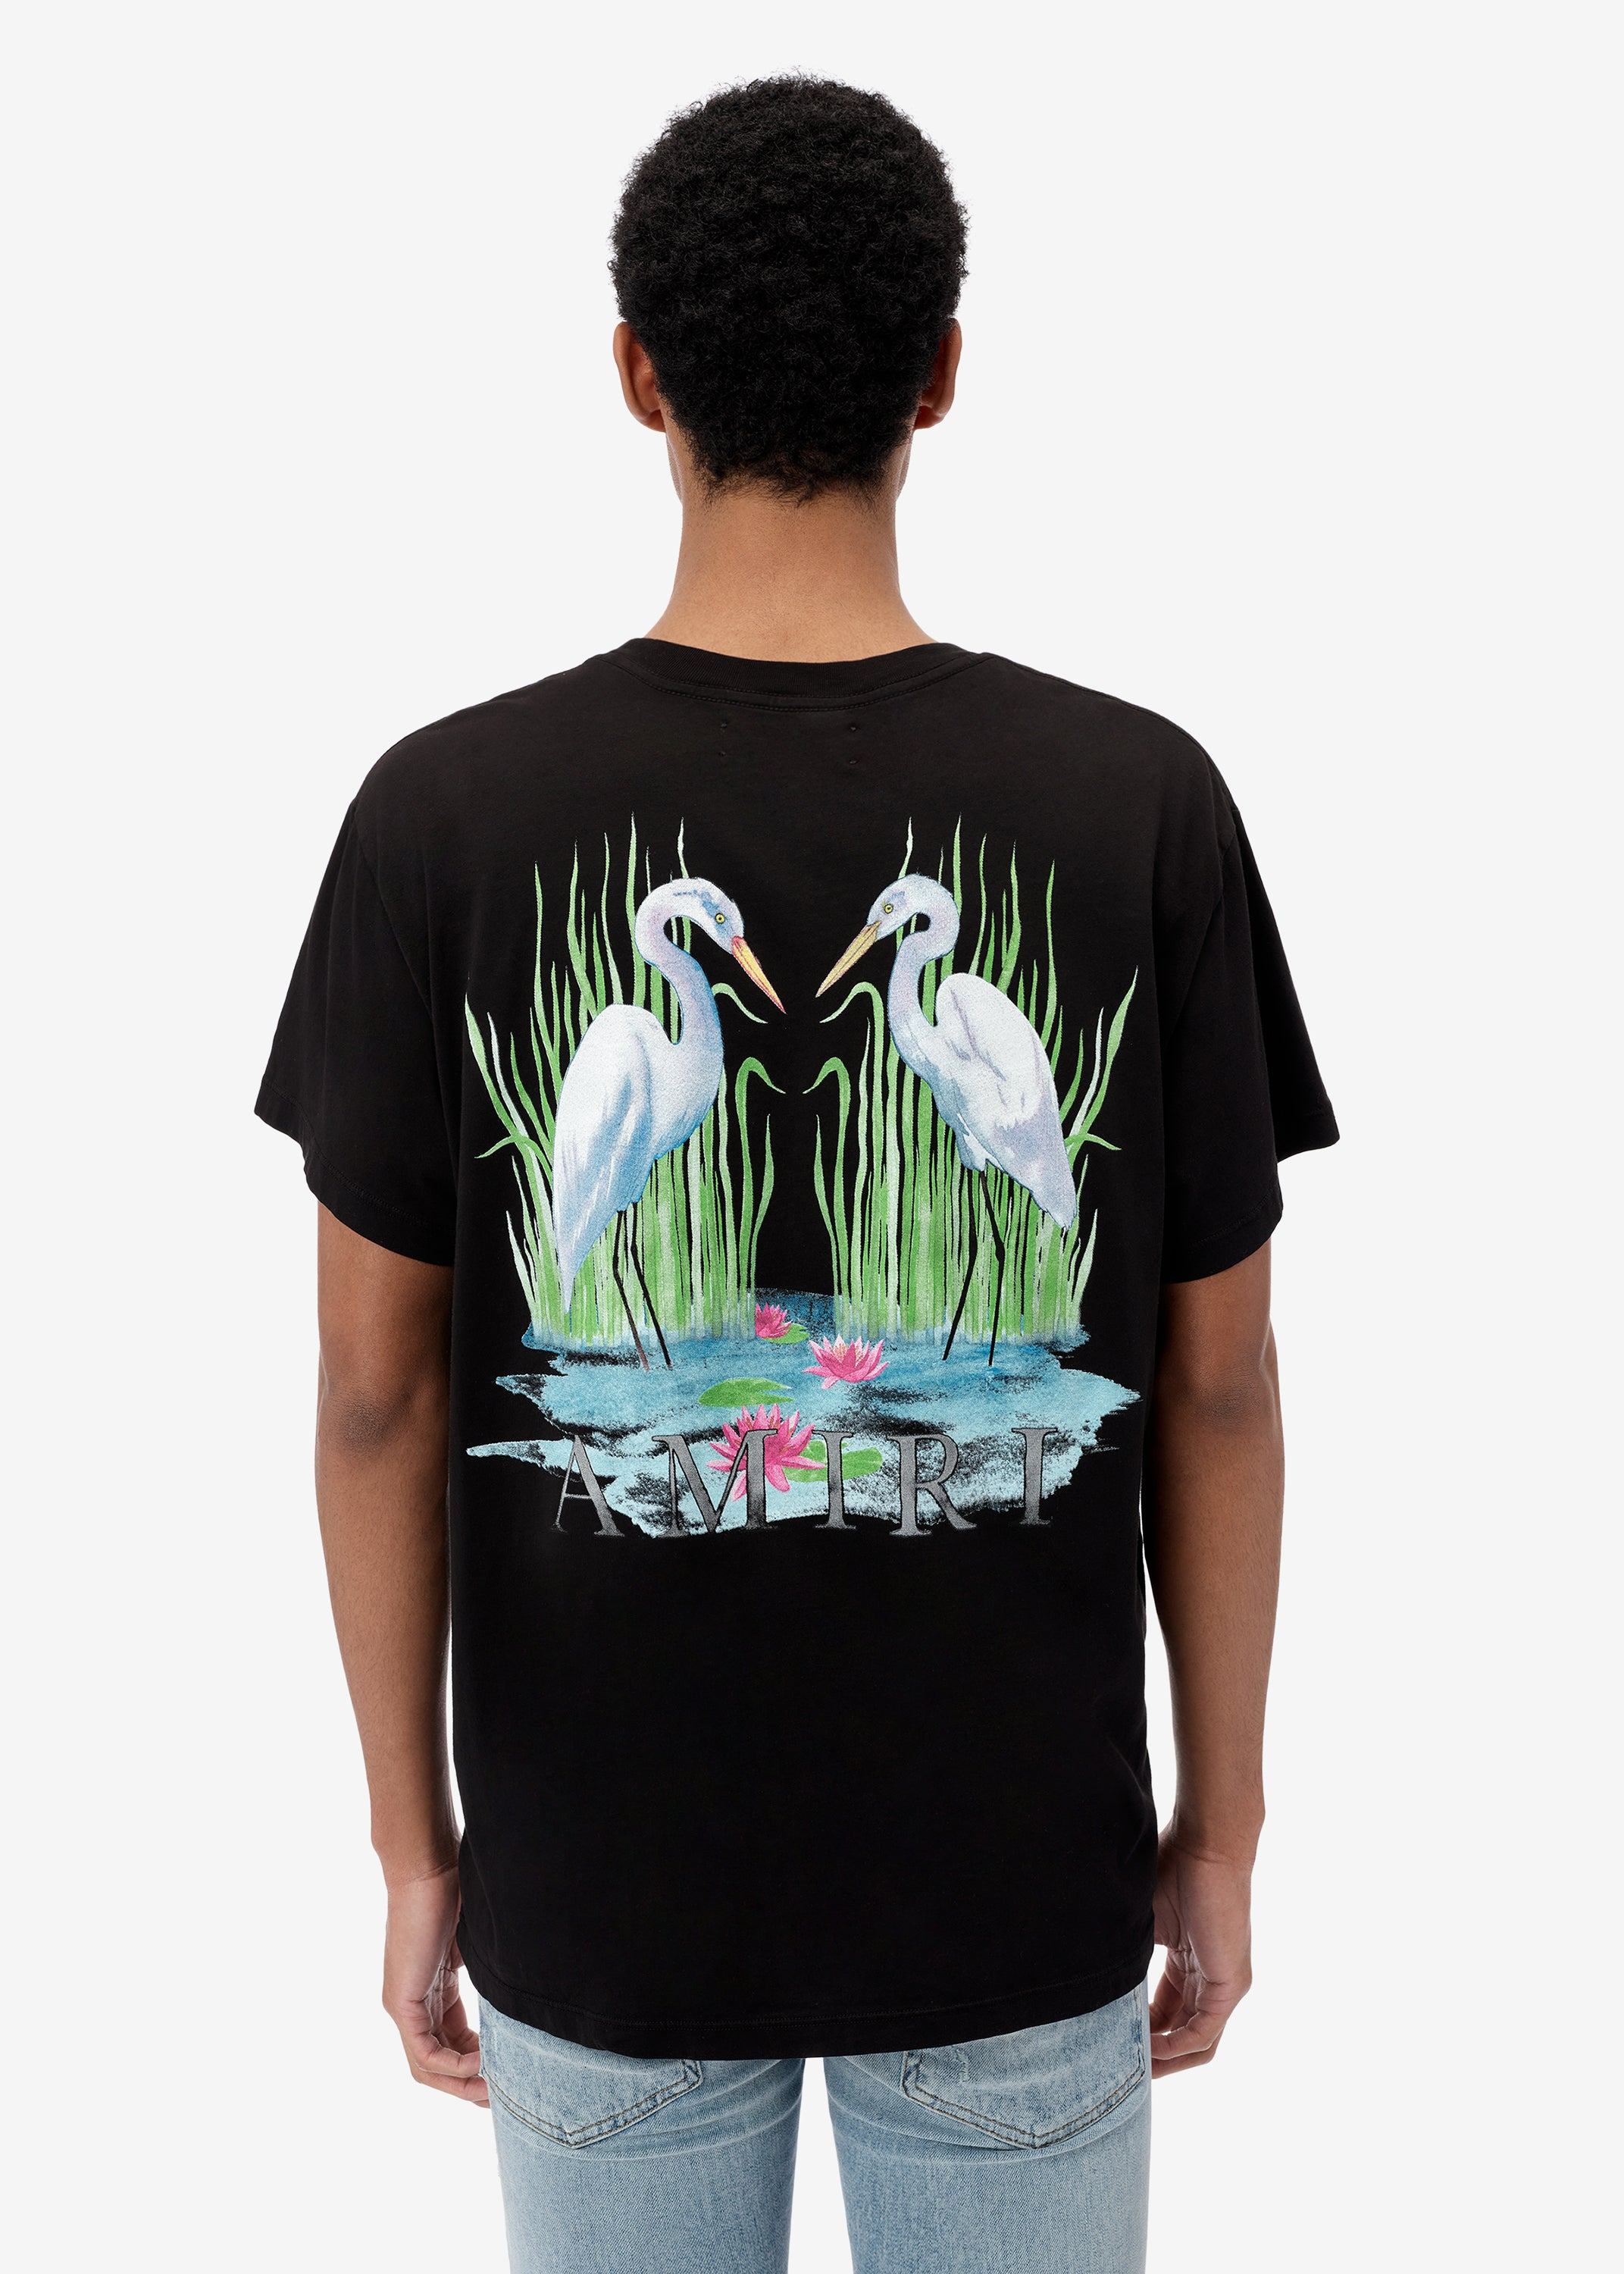 standing-egret-tee-web-exclusive-black-image-4